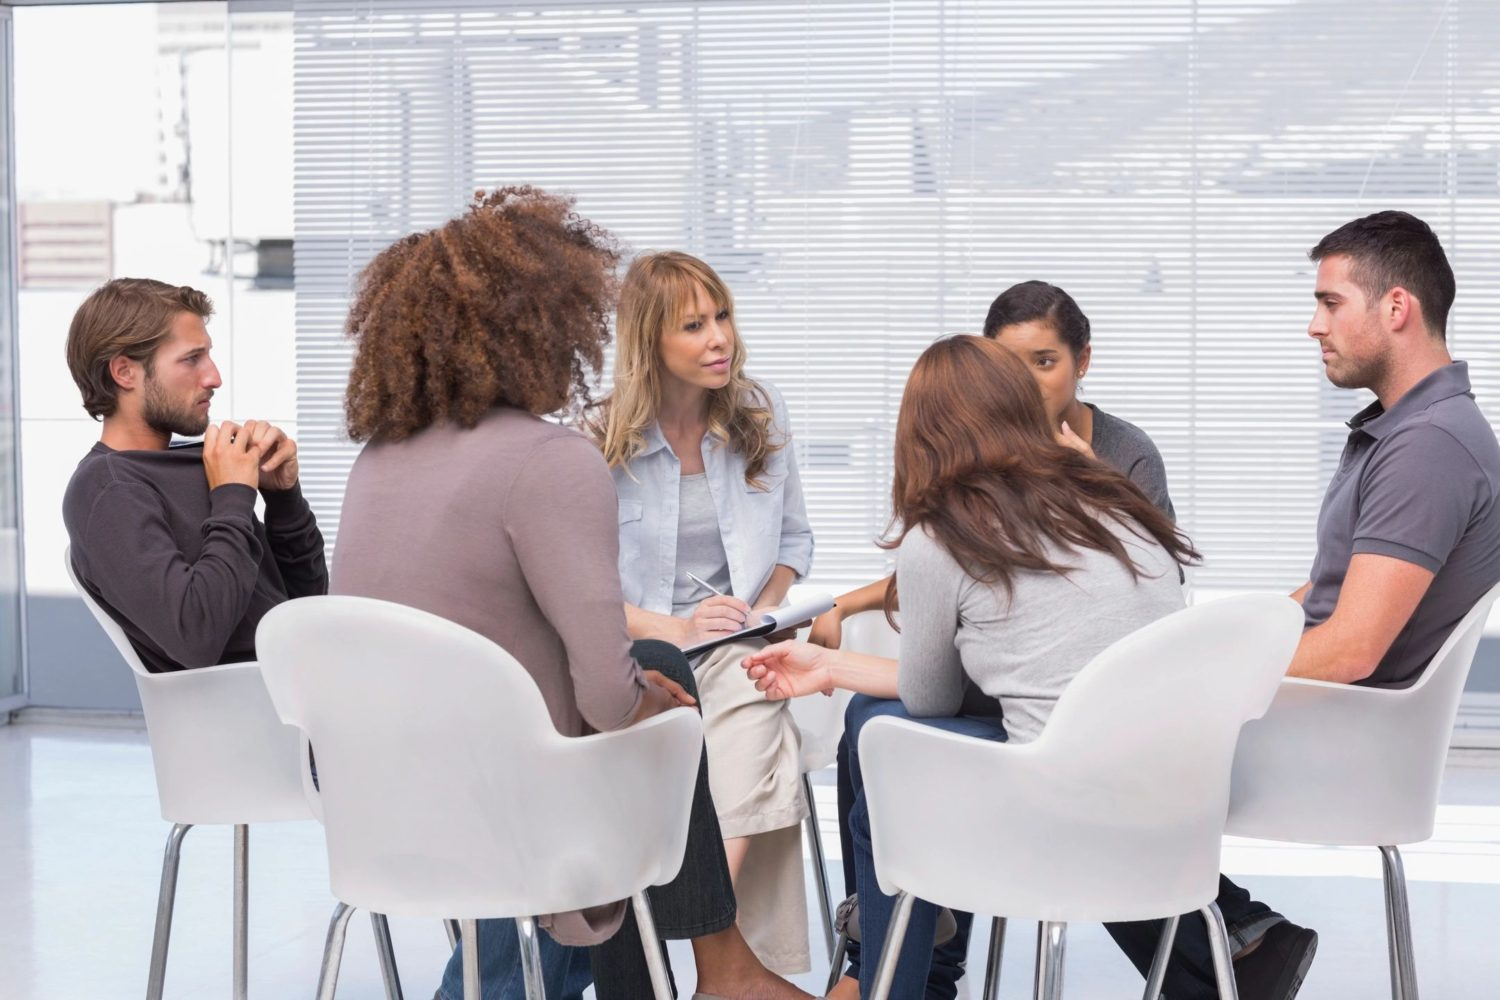 resolving conflict in the workplace through HR